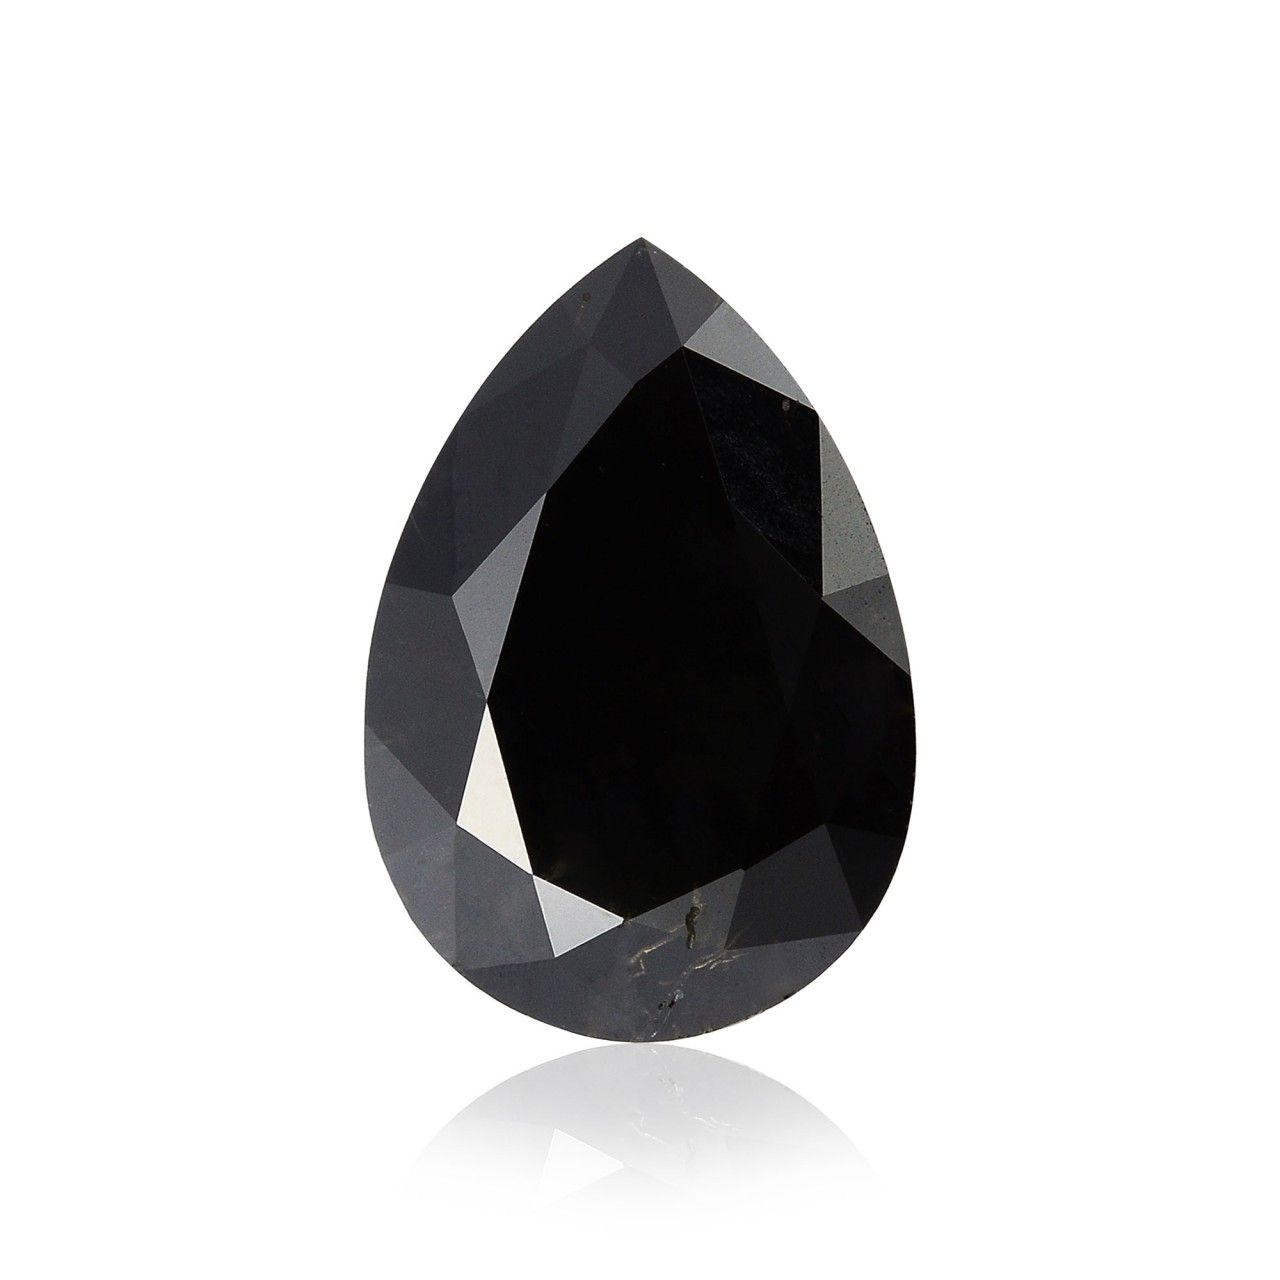 1 92 Carat Fancy Black Diamond Pear Shape Gia Sku 224788 Rose Gold Engagement Ring Black Diamond Pear Shaped